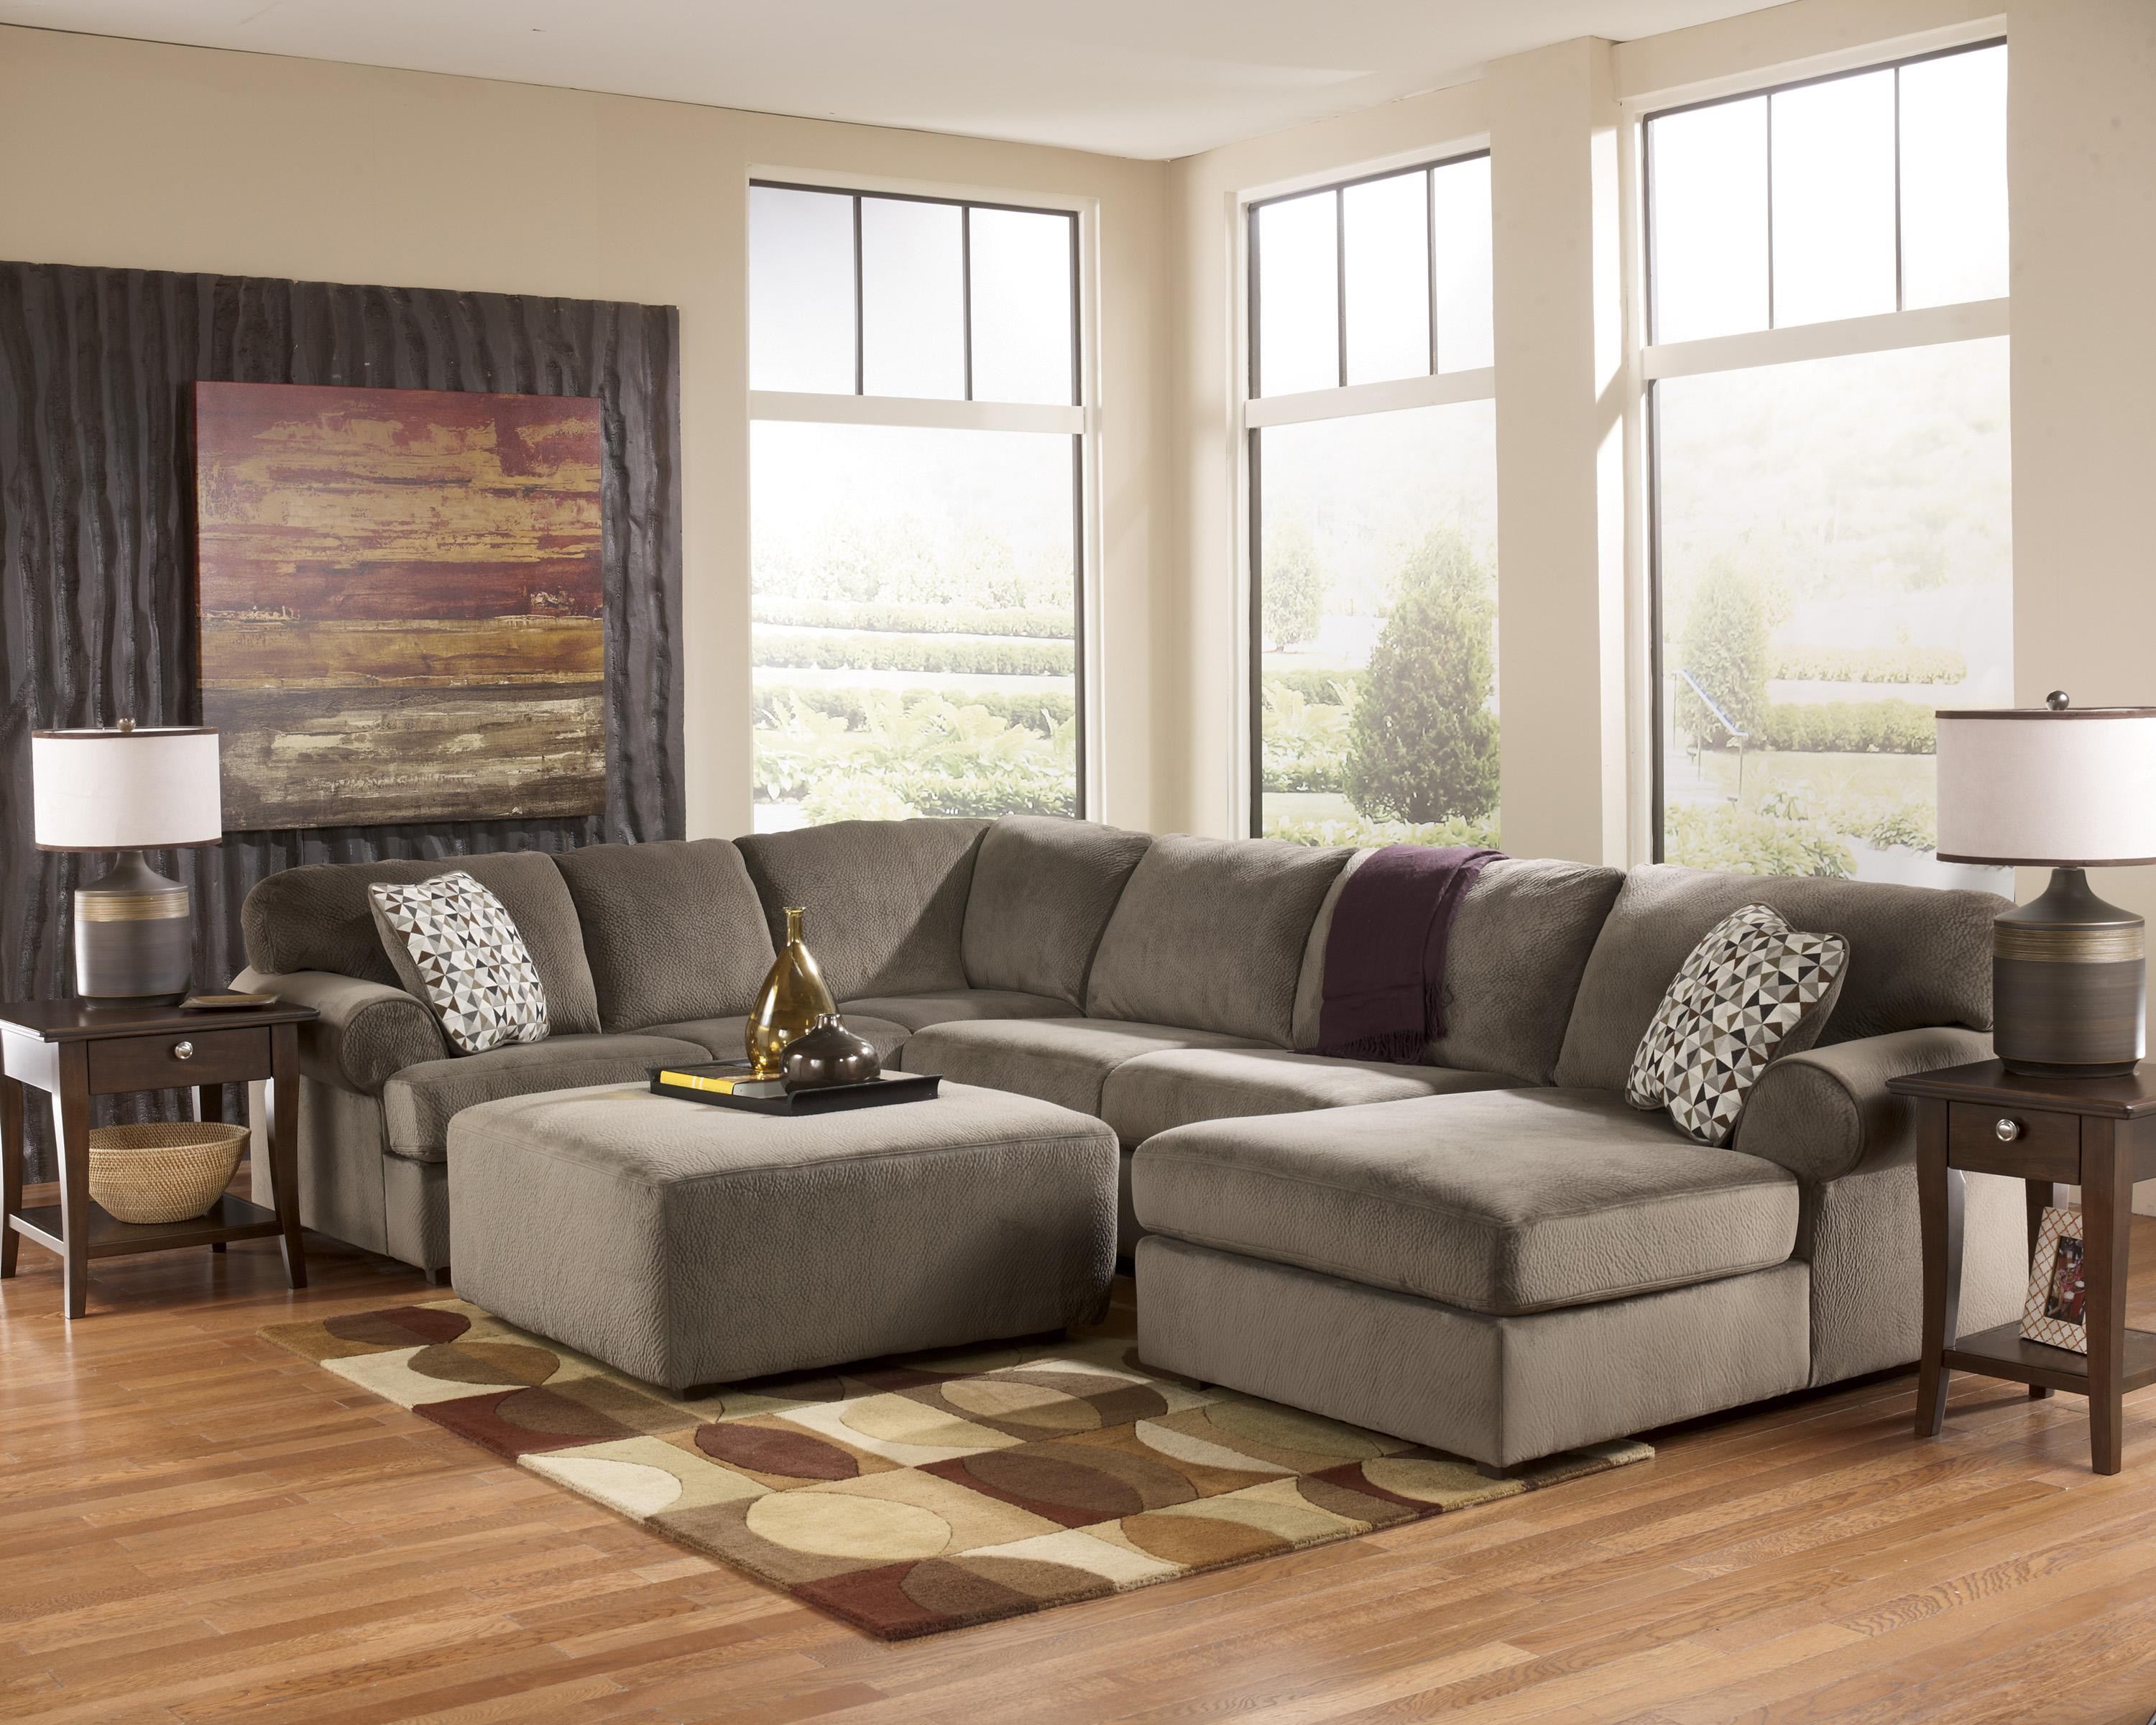 ... Shown with Coordinating Collection Sectional Sofa : jessa place sectional dimensions - Sectionals, Sofas & Couches